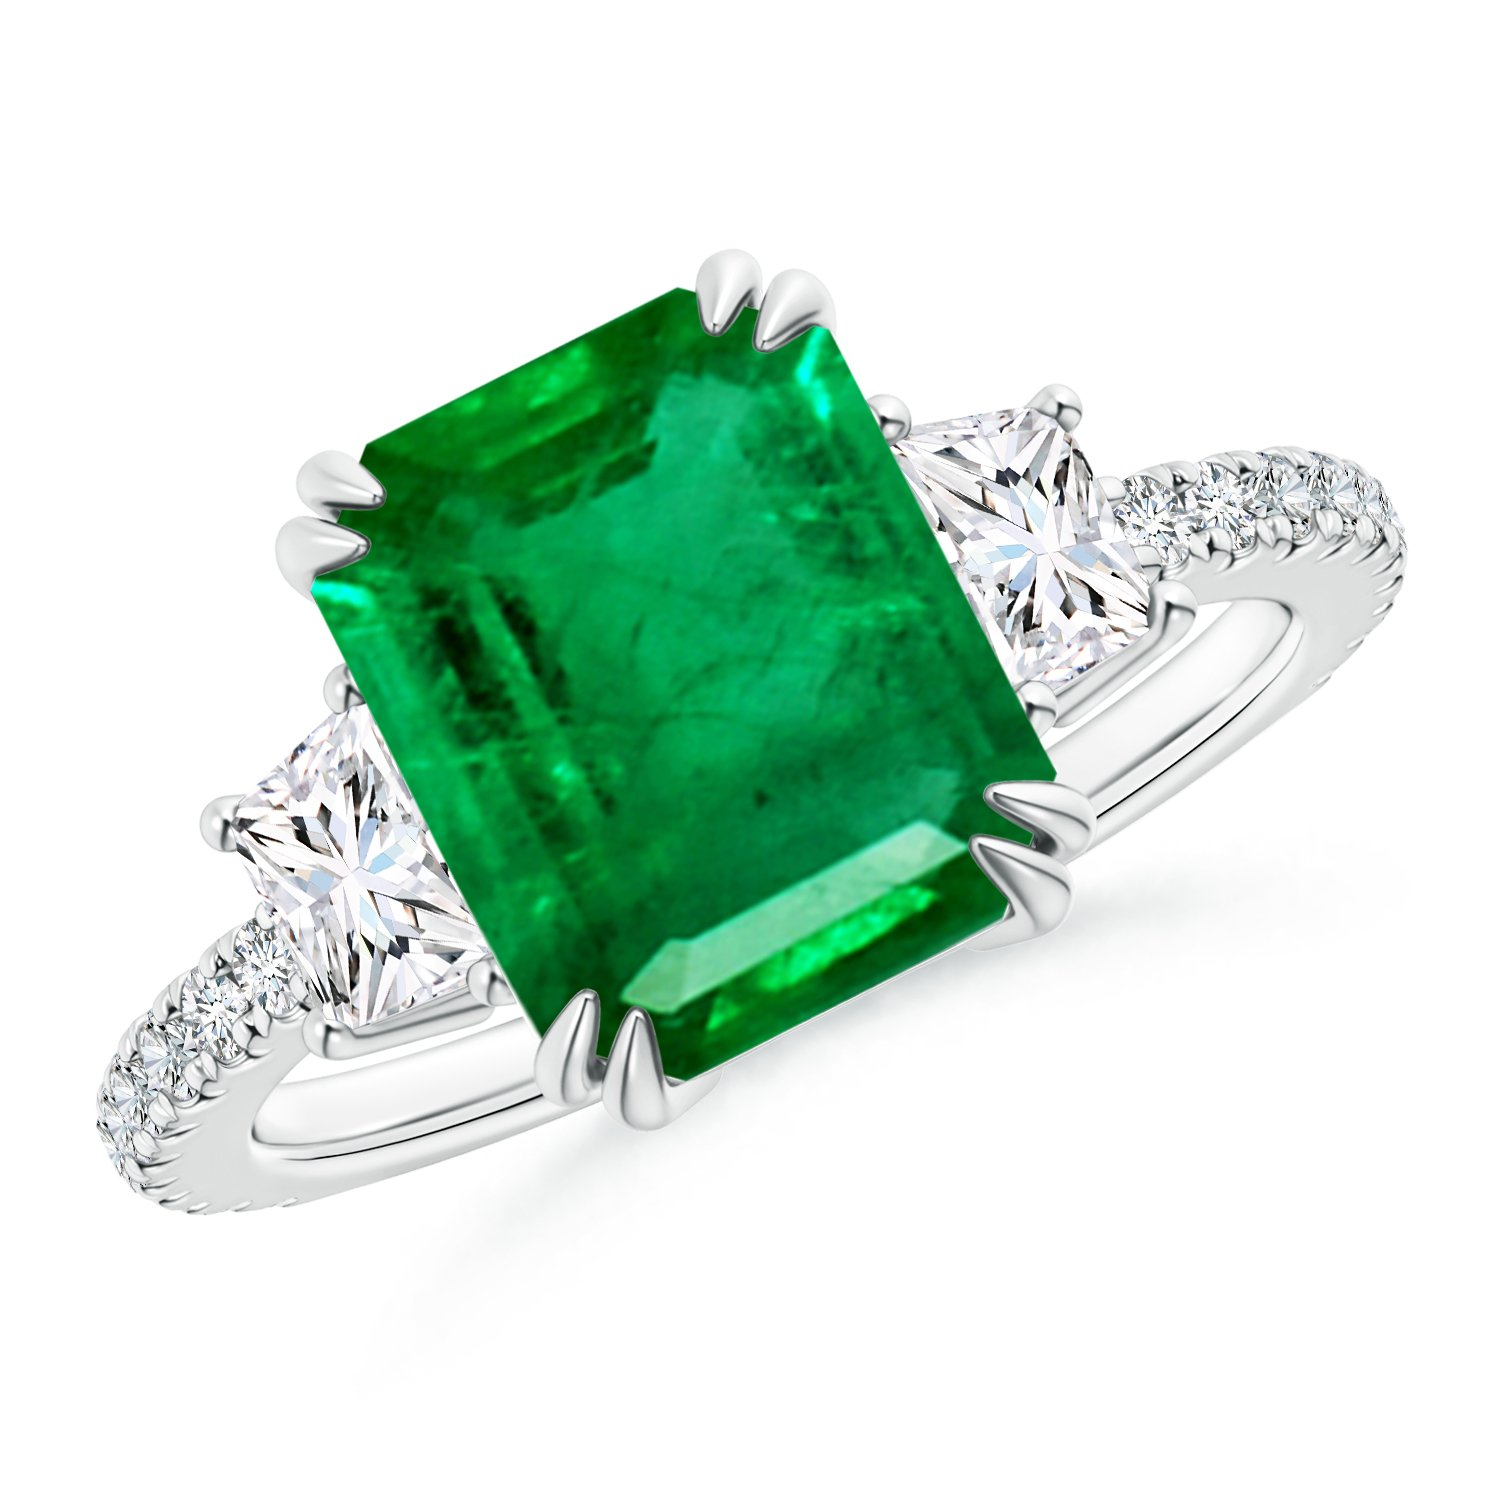 investment your worth heat treated should gemstones money gems real know in and or invest you emerald untreated of